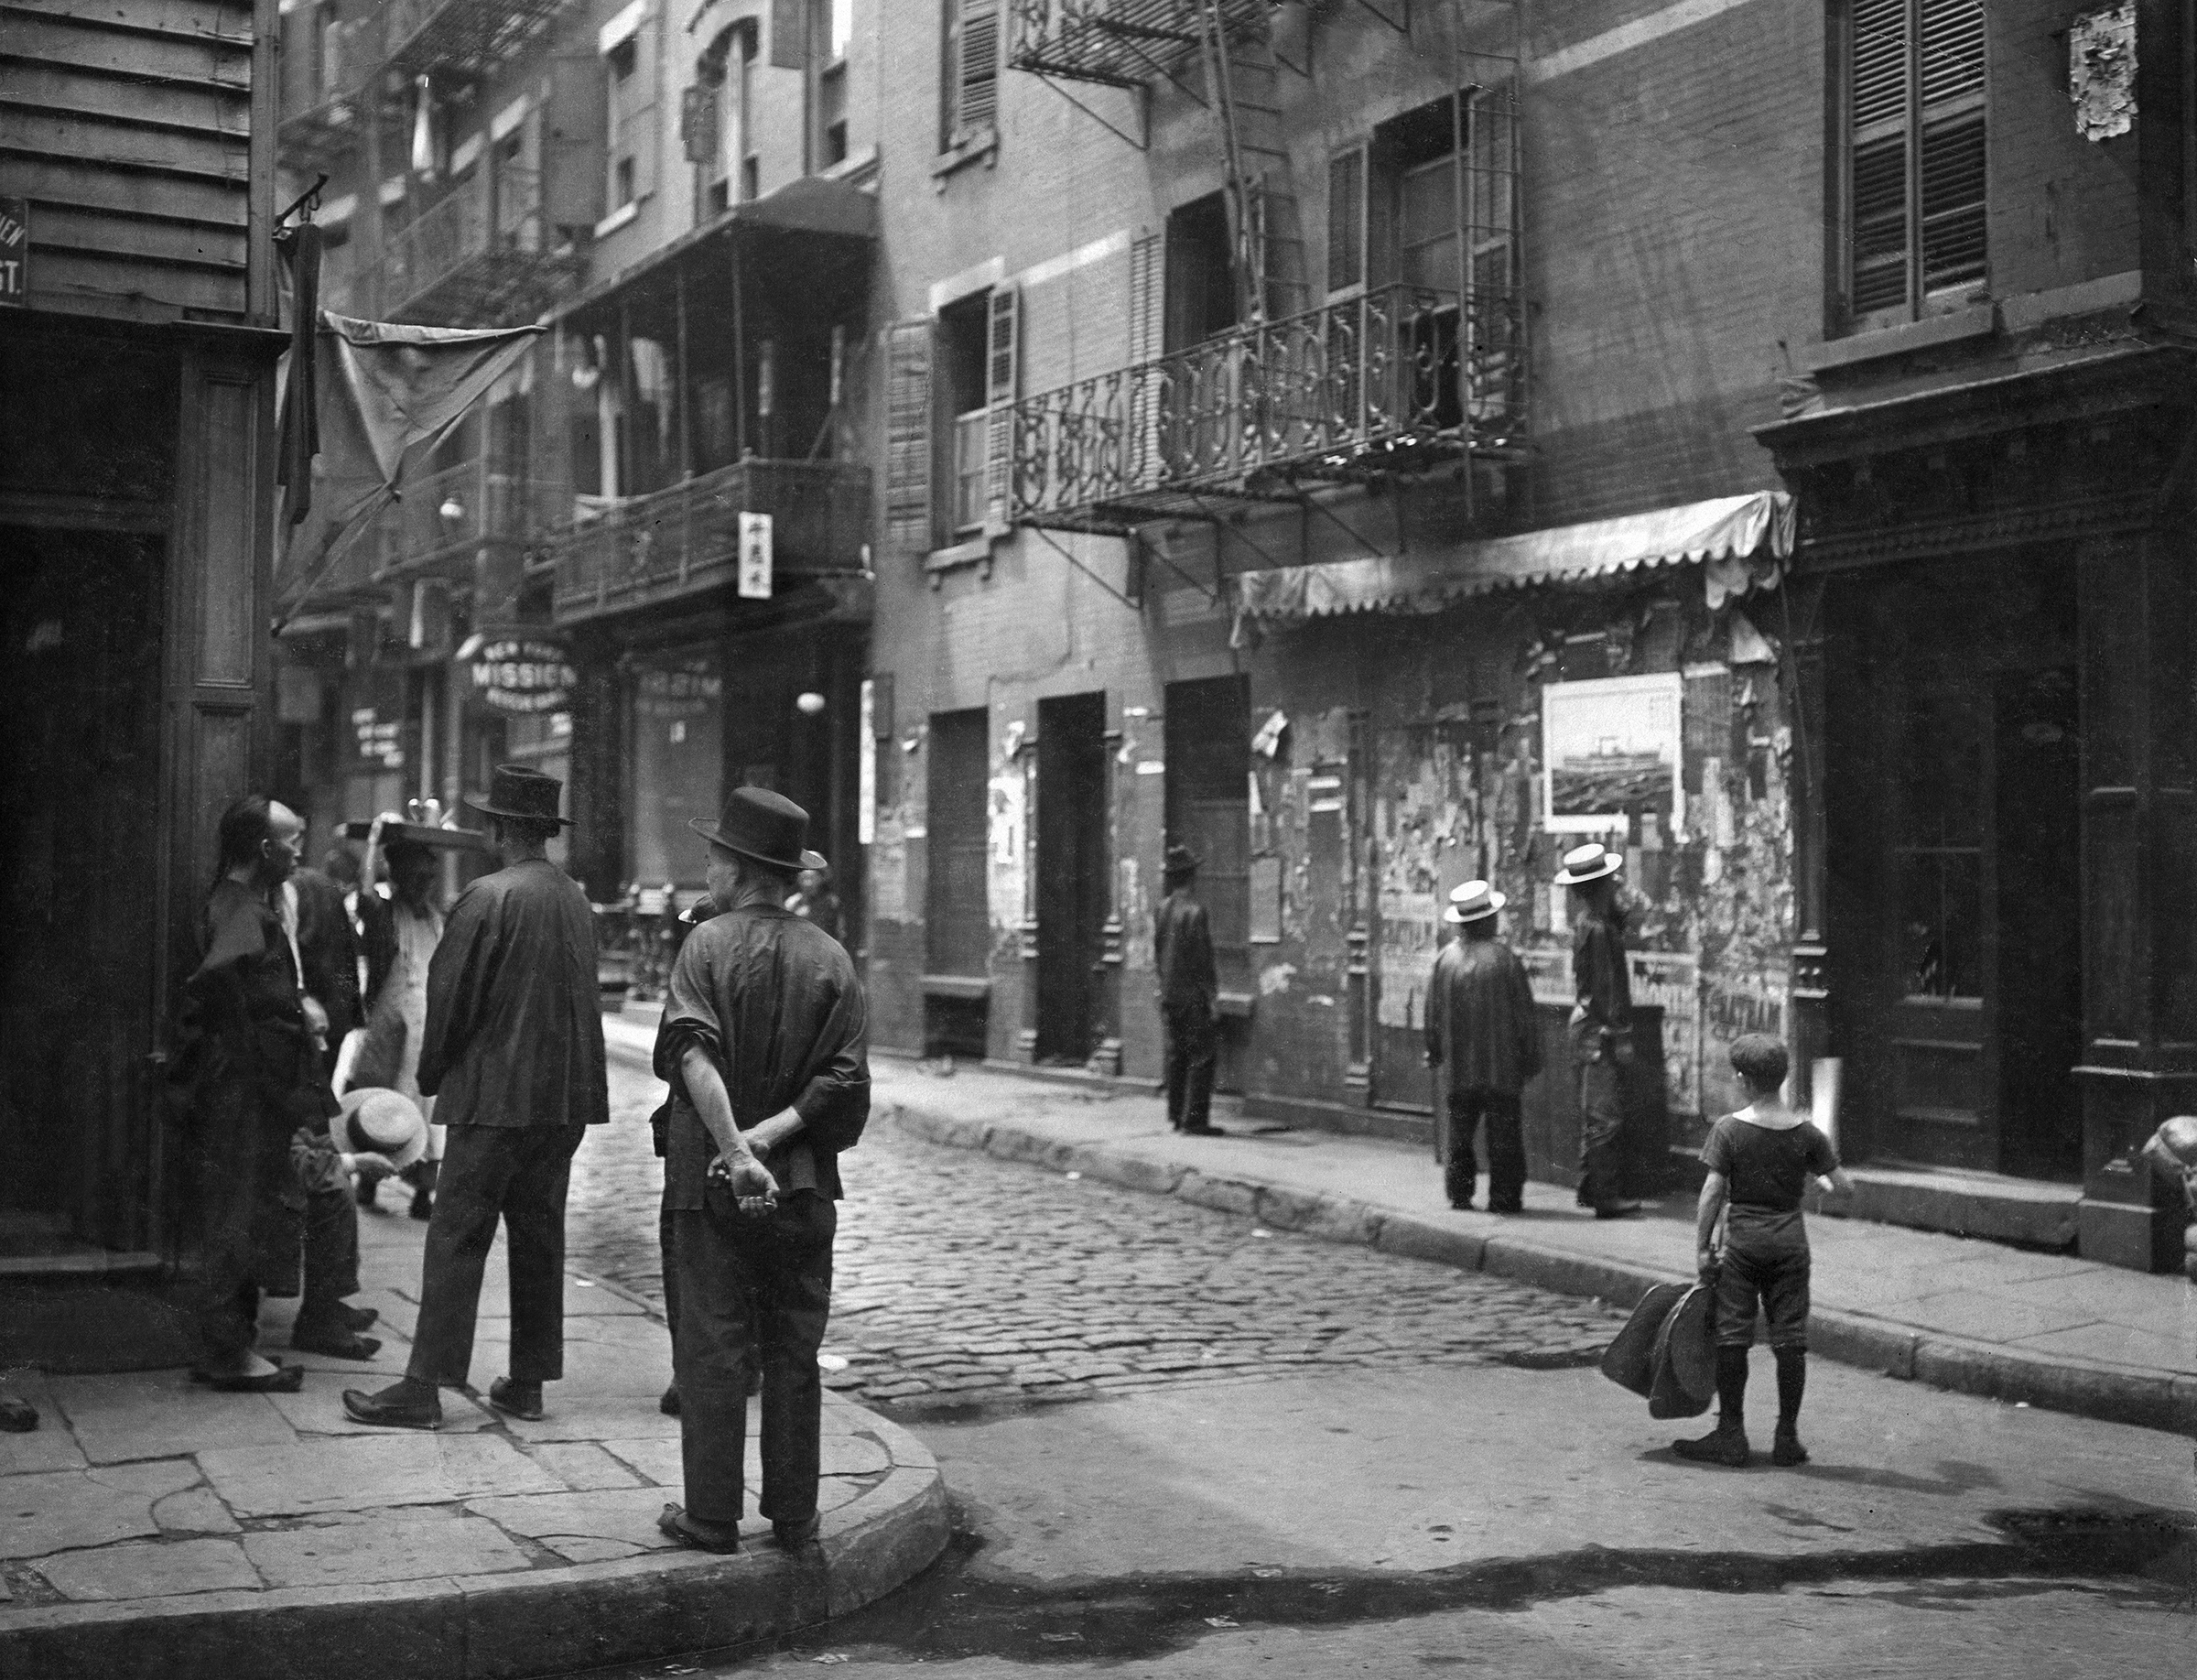 Street scene in Chinatown, New York, in 1909.